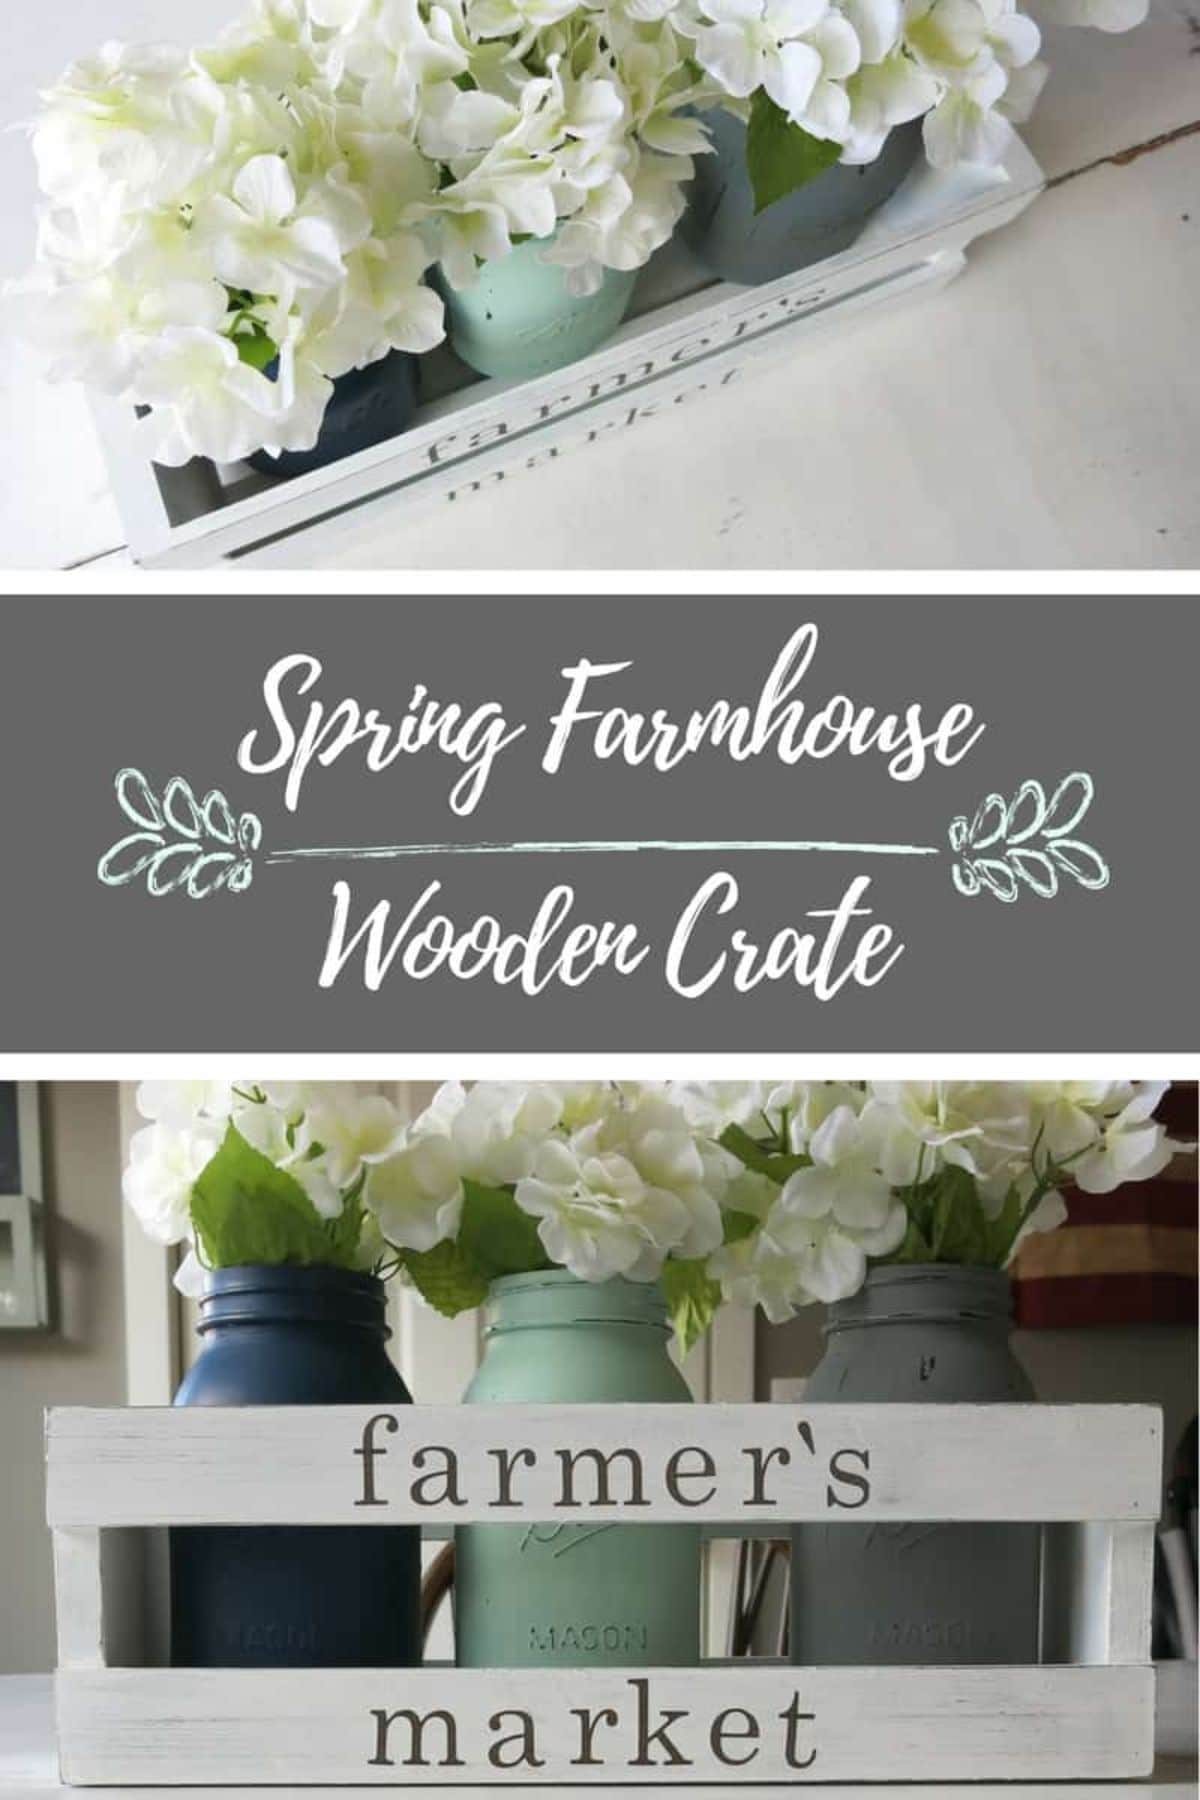 """Pictures show a white painted crate with """"farmer's market"""" written on it and 3 mason jars filled with flowers inside"""